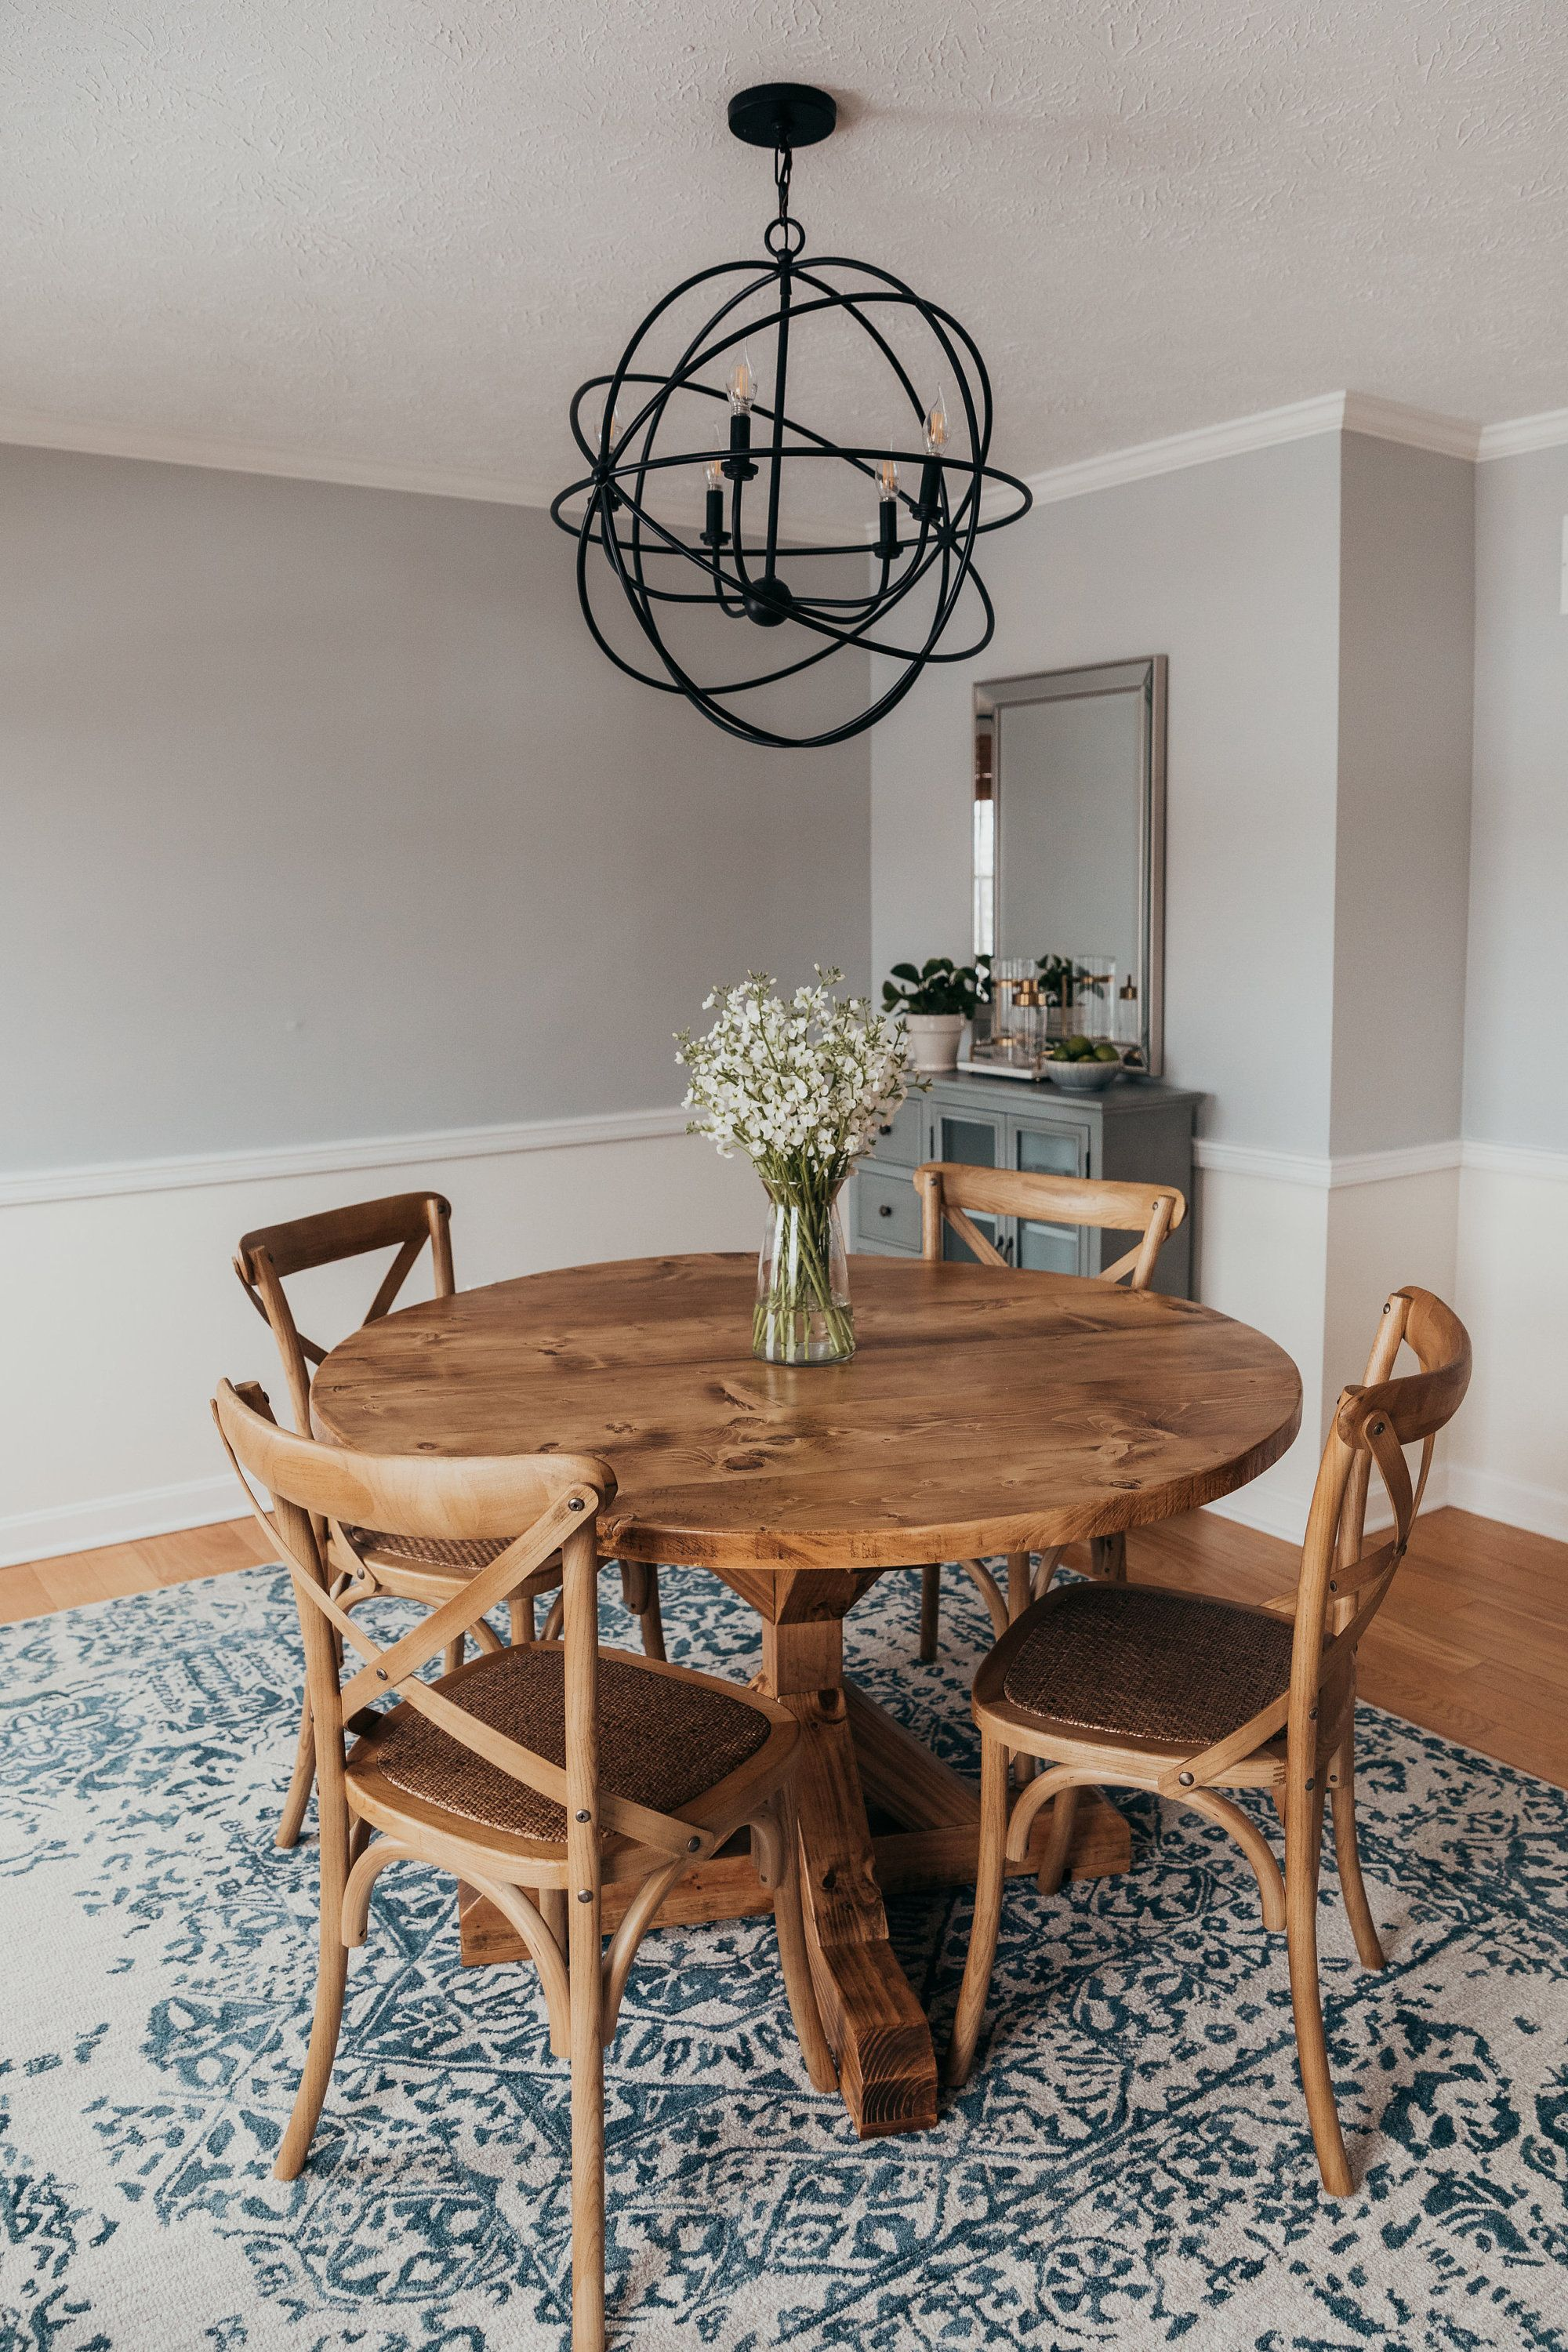 Round Pedestal Trestle Table Rustic X Round Pedestal Farmhouse Solid Wood Beam Dining Room Kitchen Table In 2020 Dining Table Dining Room Design Wood Table Rustic